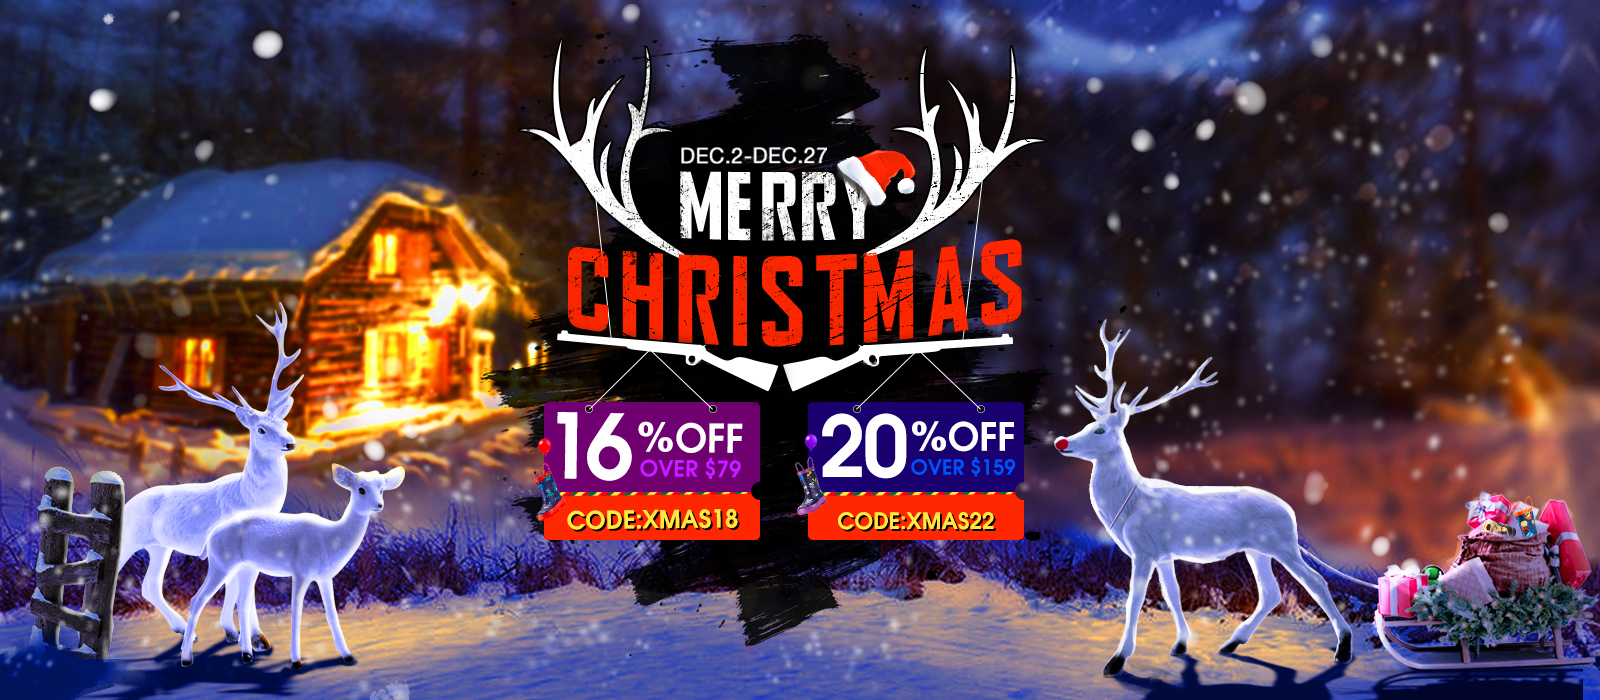 Up to 20% off on Christmas Deals